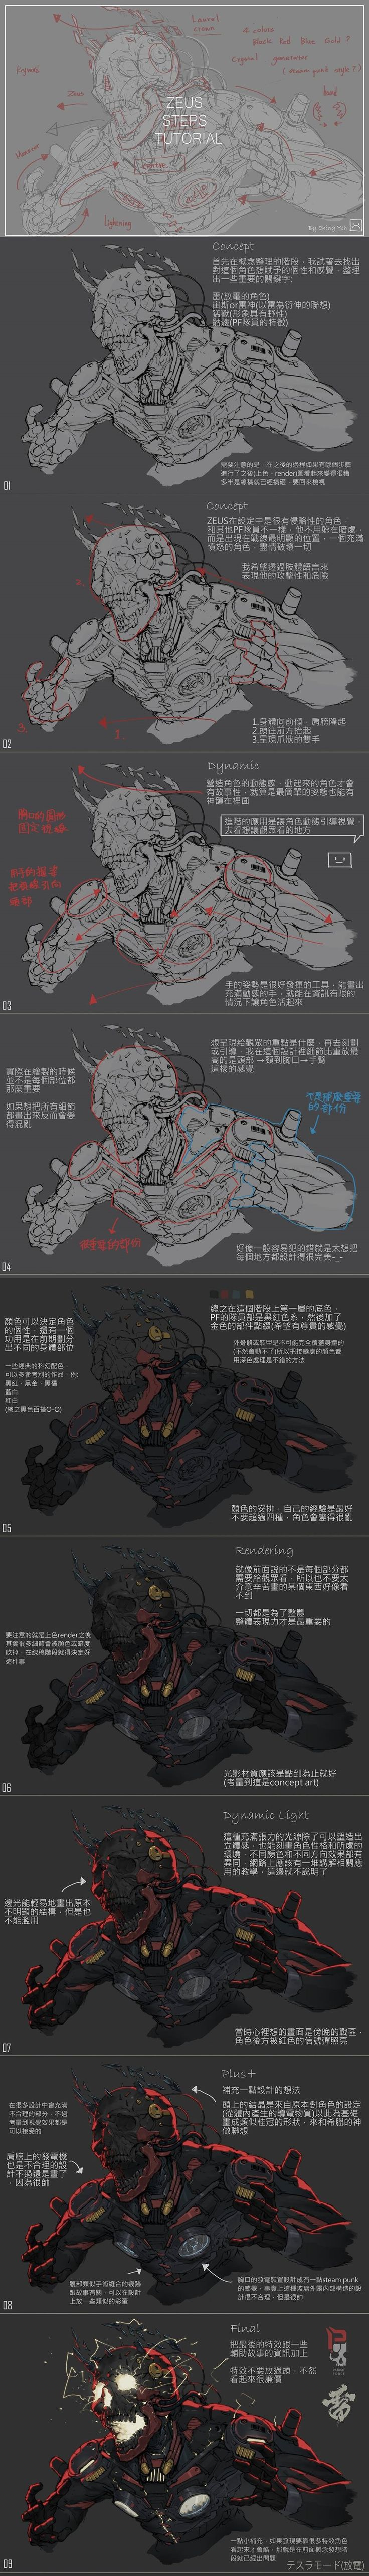 Ching Yeh|via:https://www.facebook.com/yeh.ching.7